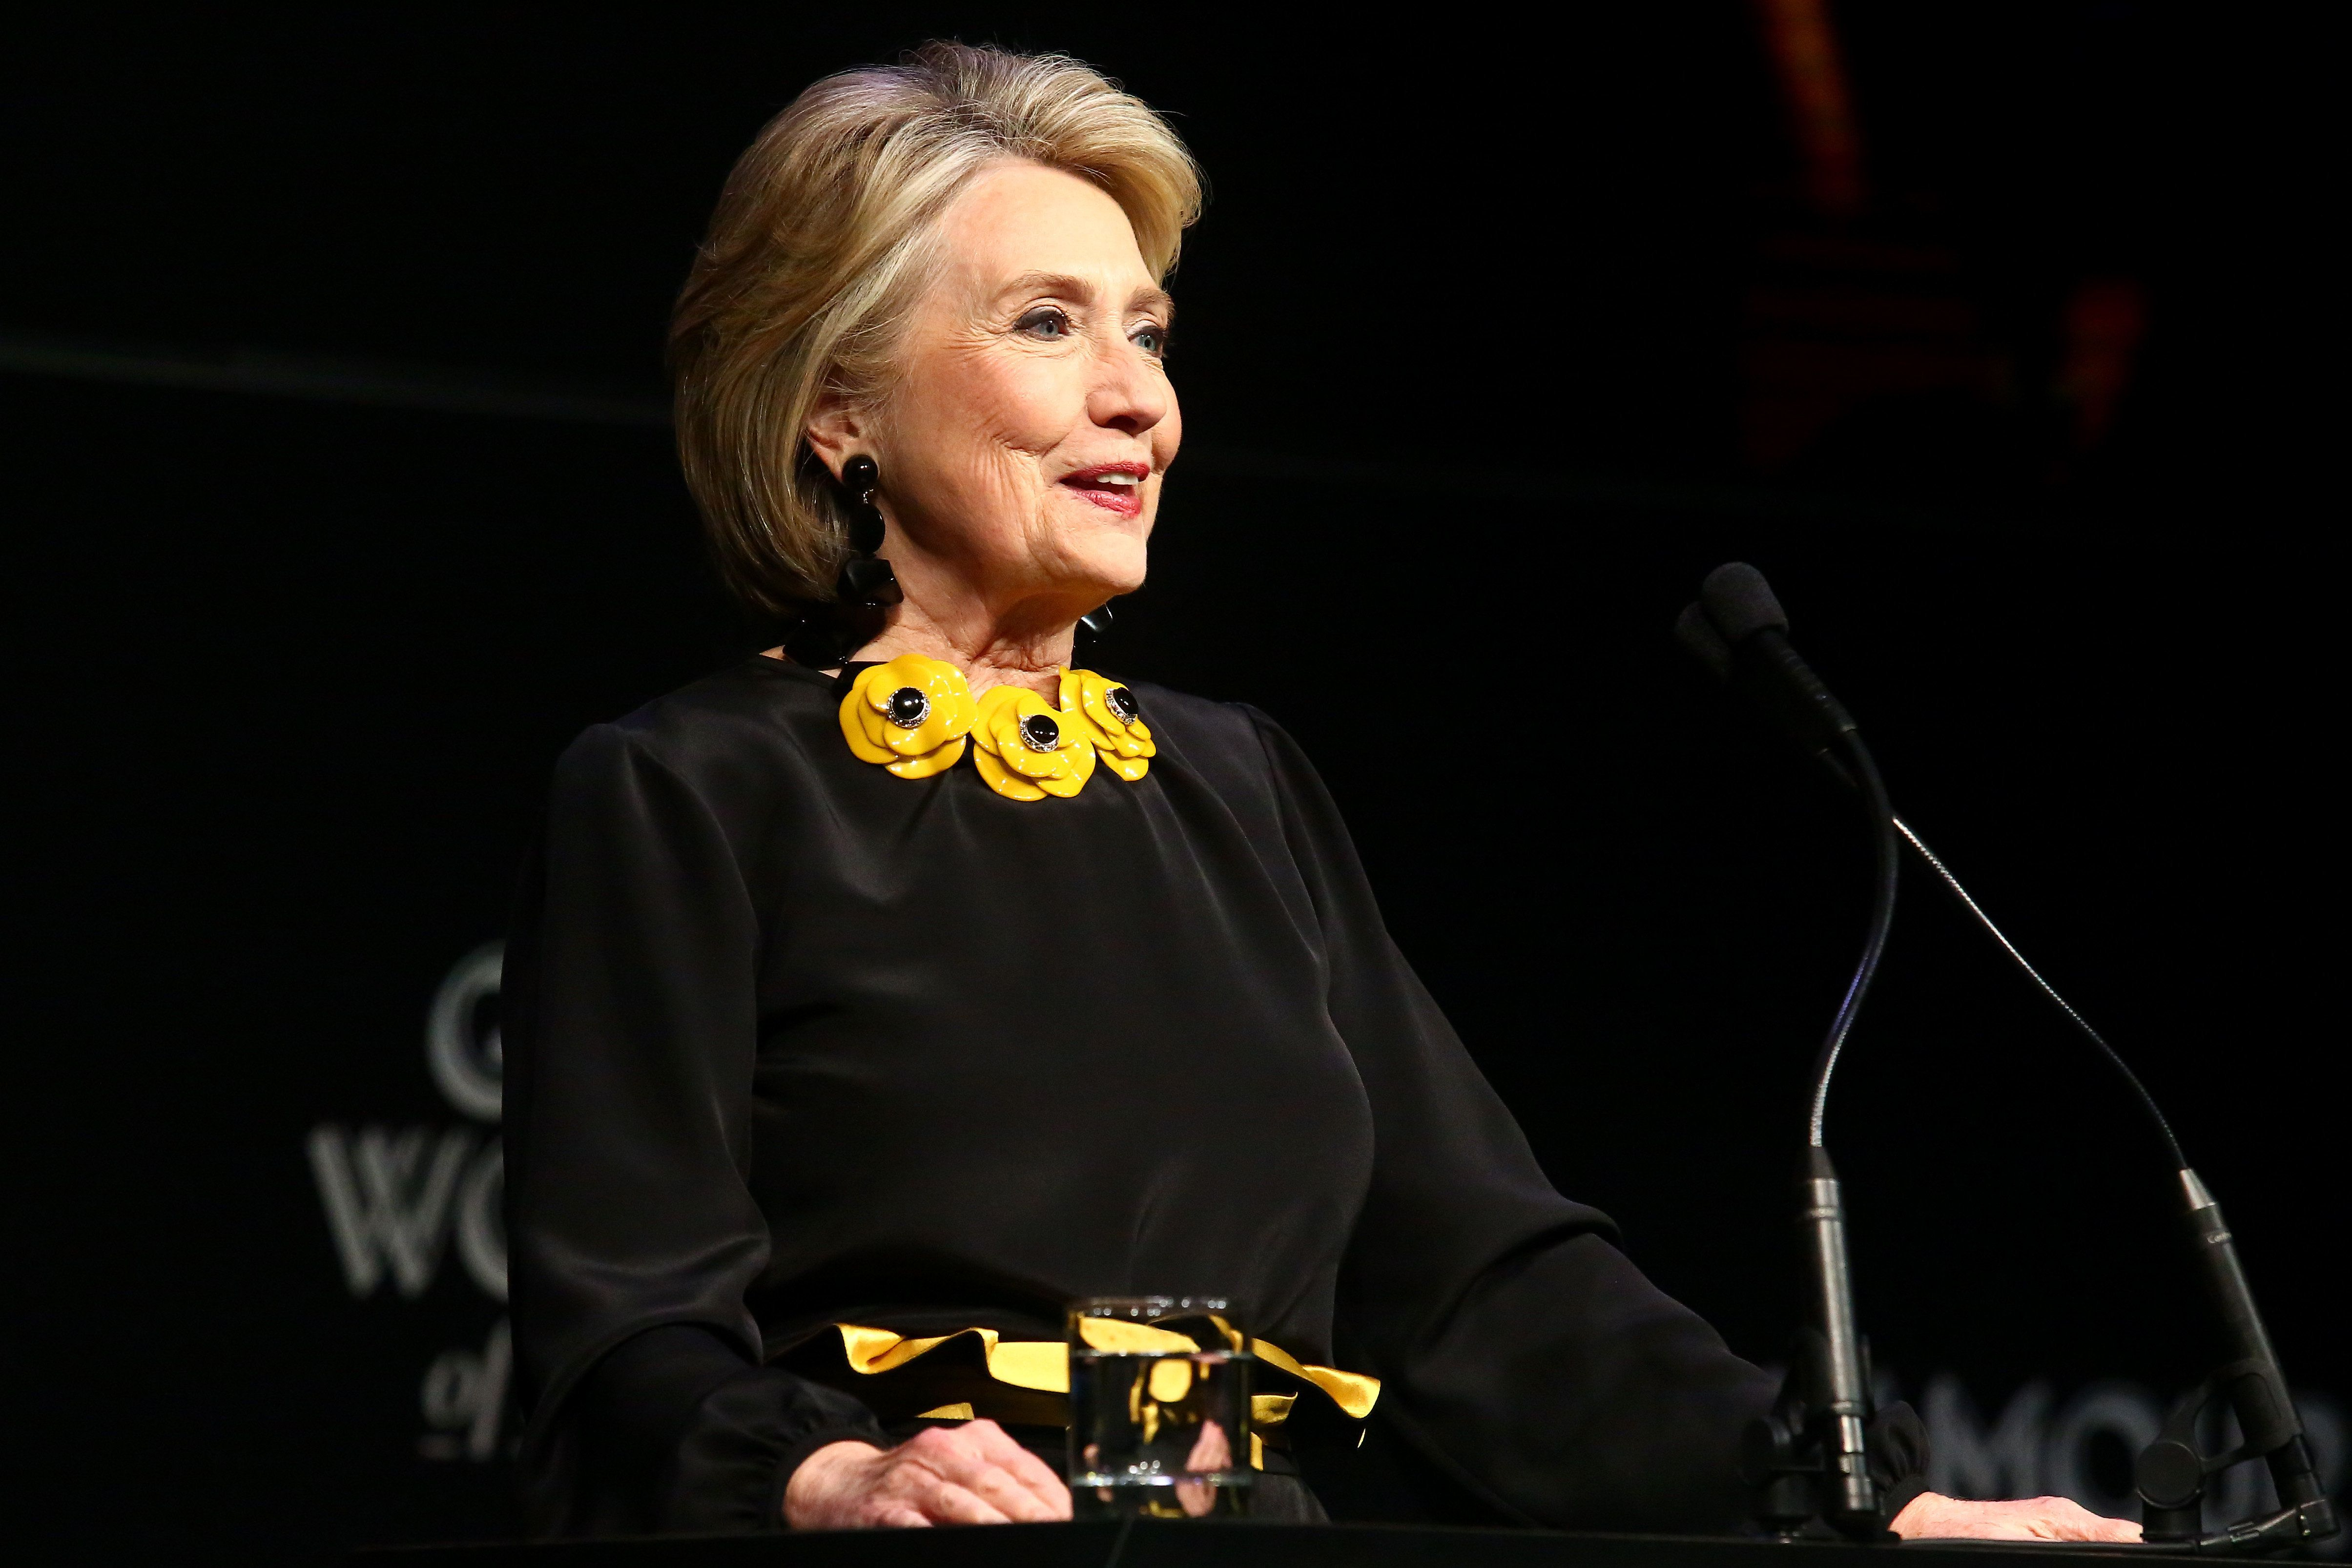 NEW YORK, NY - NOVEMBER 12:  Hillary Clinton speaks onstage at the 2018 Glamour Women Of The Year Awards: Women Rise on November 12, 2018 in New York City.  (Photo by Astrid Stawiarz/Getty Images for Glamour)